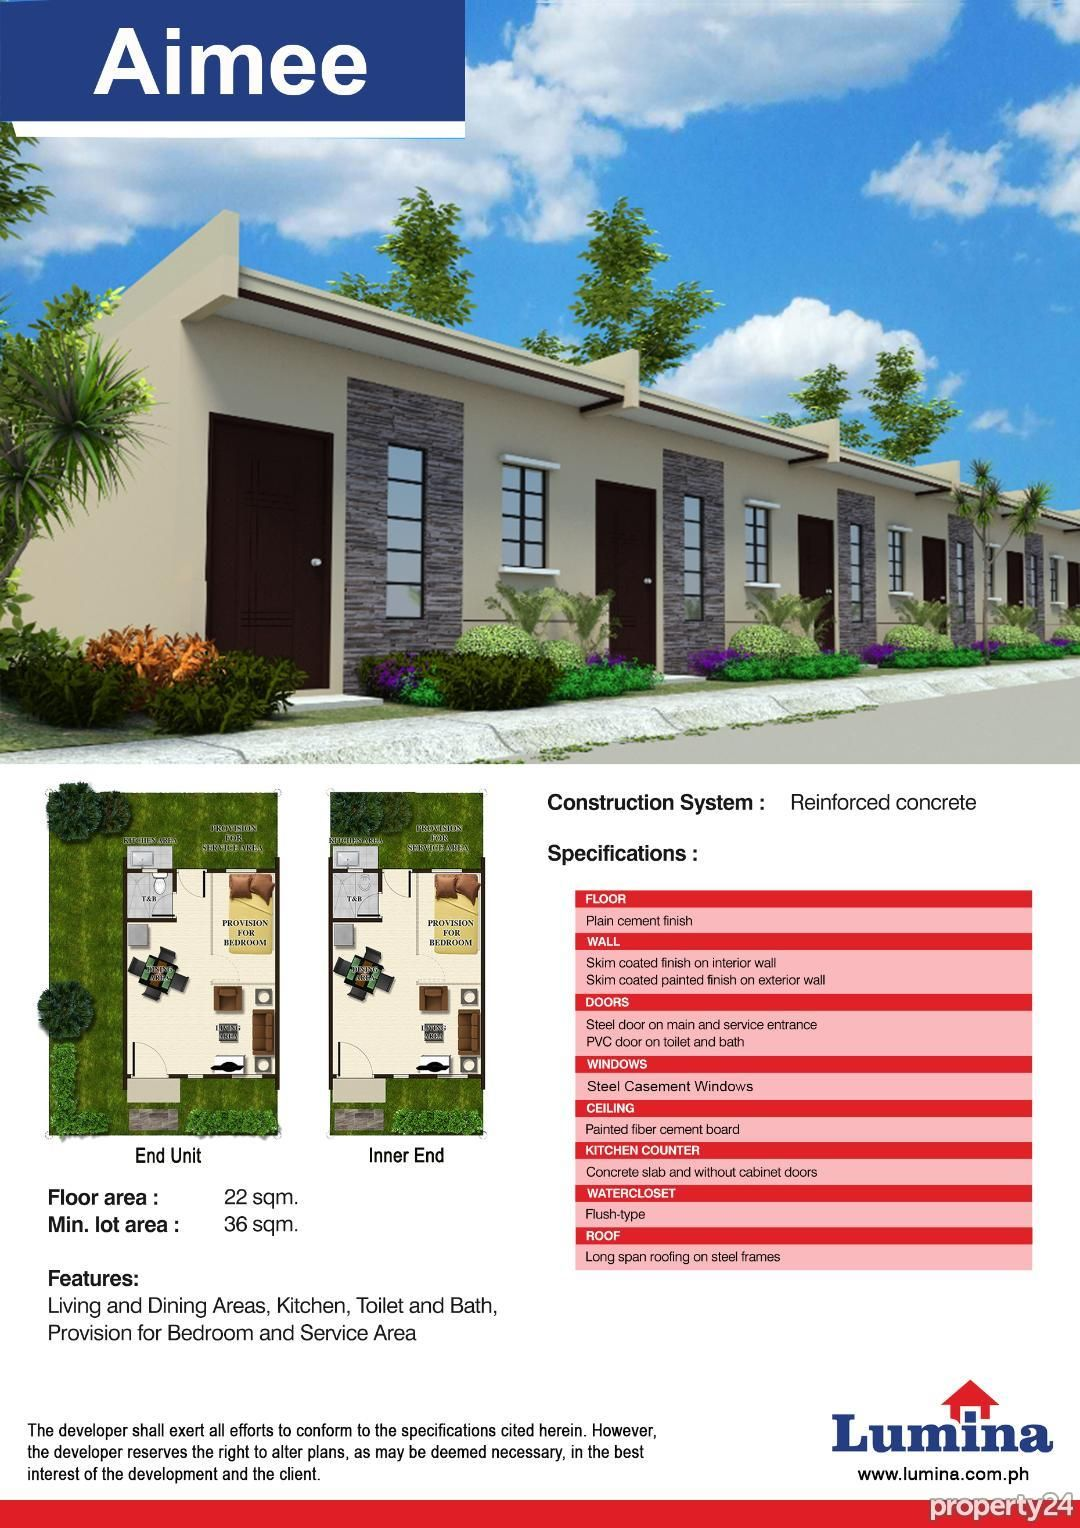 1 Bedroom House Lot For Sale In Plaridel With Images One Storey House Sale House 1 Bedroom House